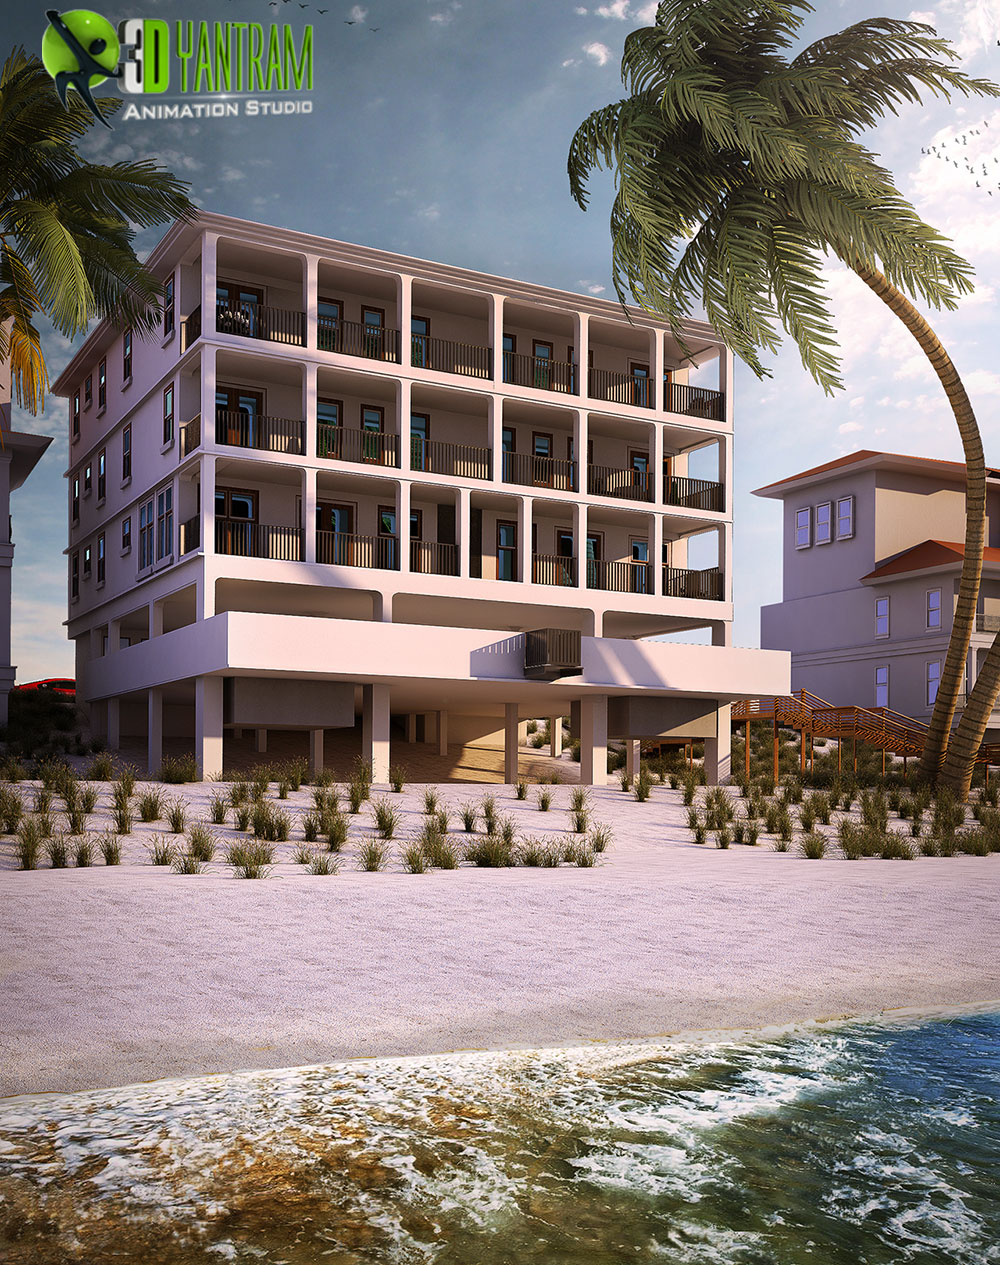 Yantram Studio - Beach Side Exterior House Rendering by 3D Yantram Architectural Modeling Firm - Boston,USA